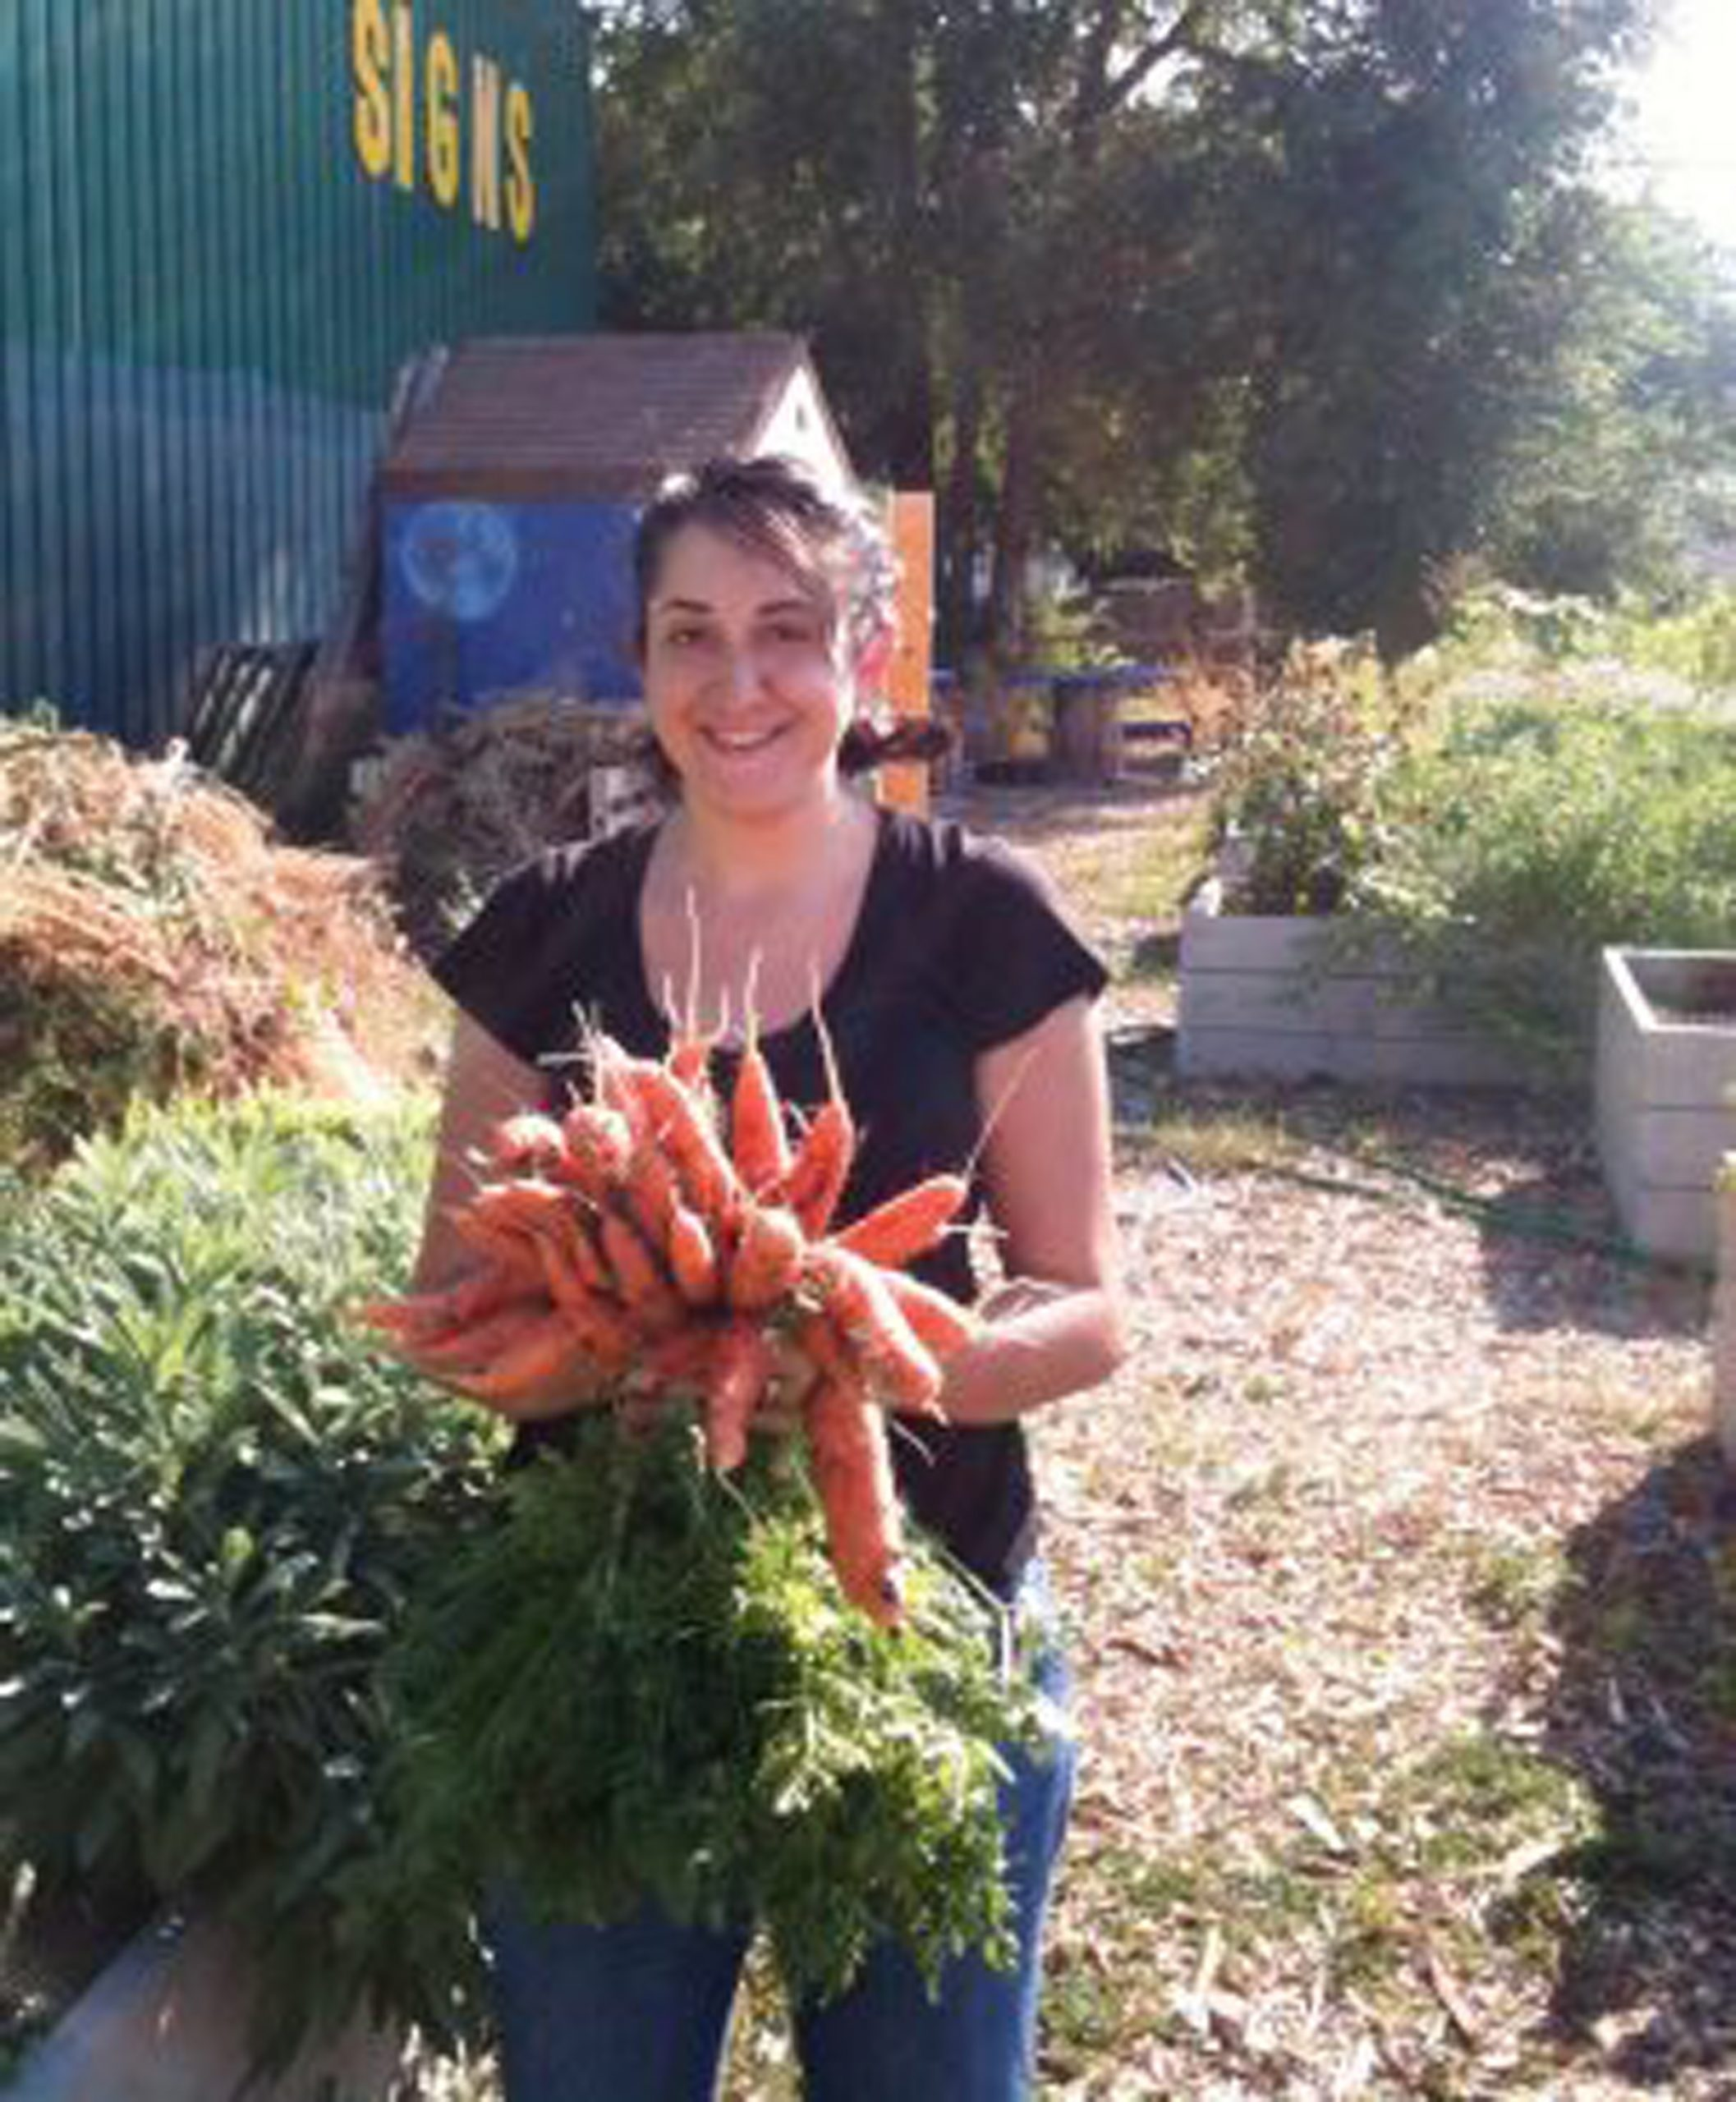 Miriam with her carrot harvest at the People's Portable Garden.